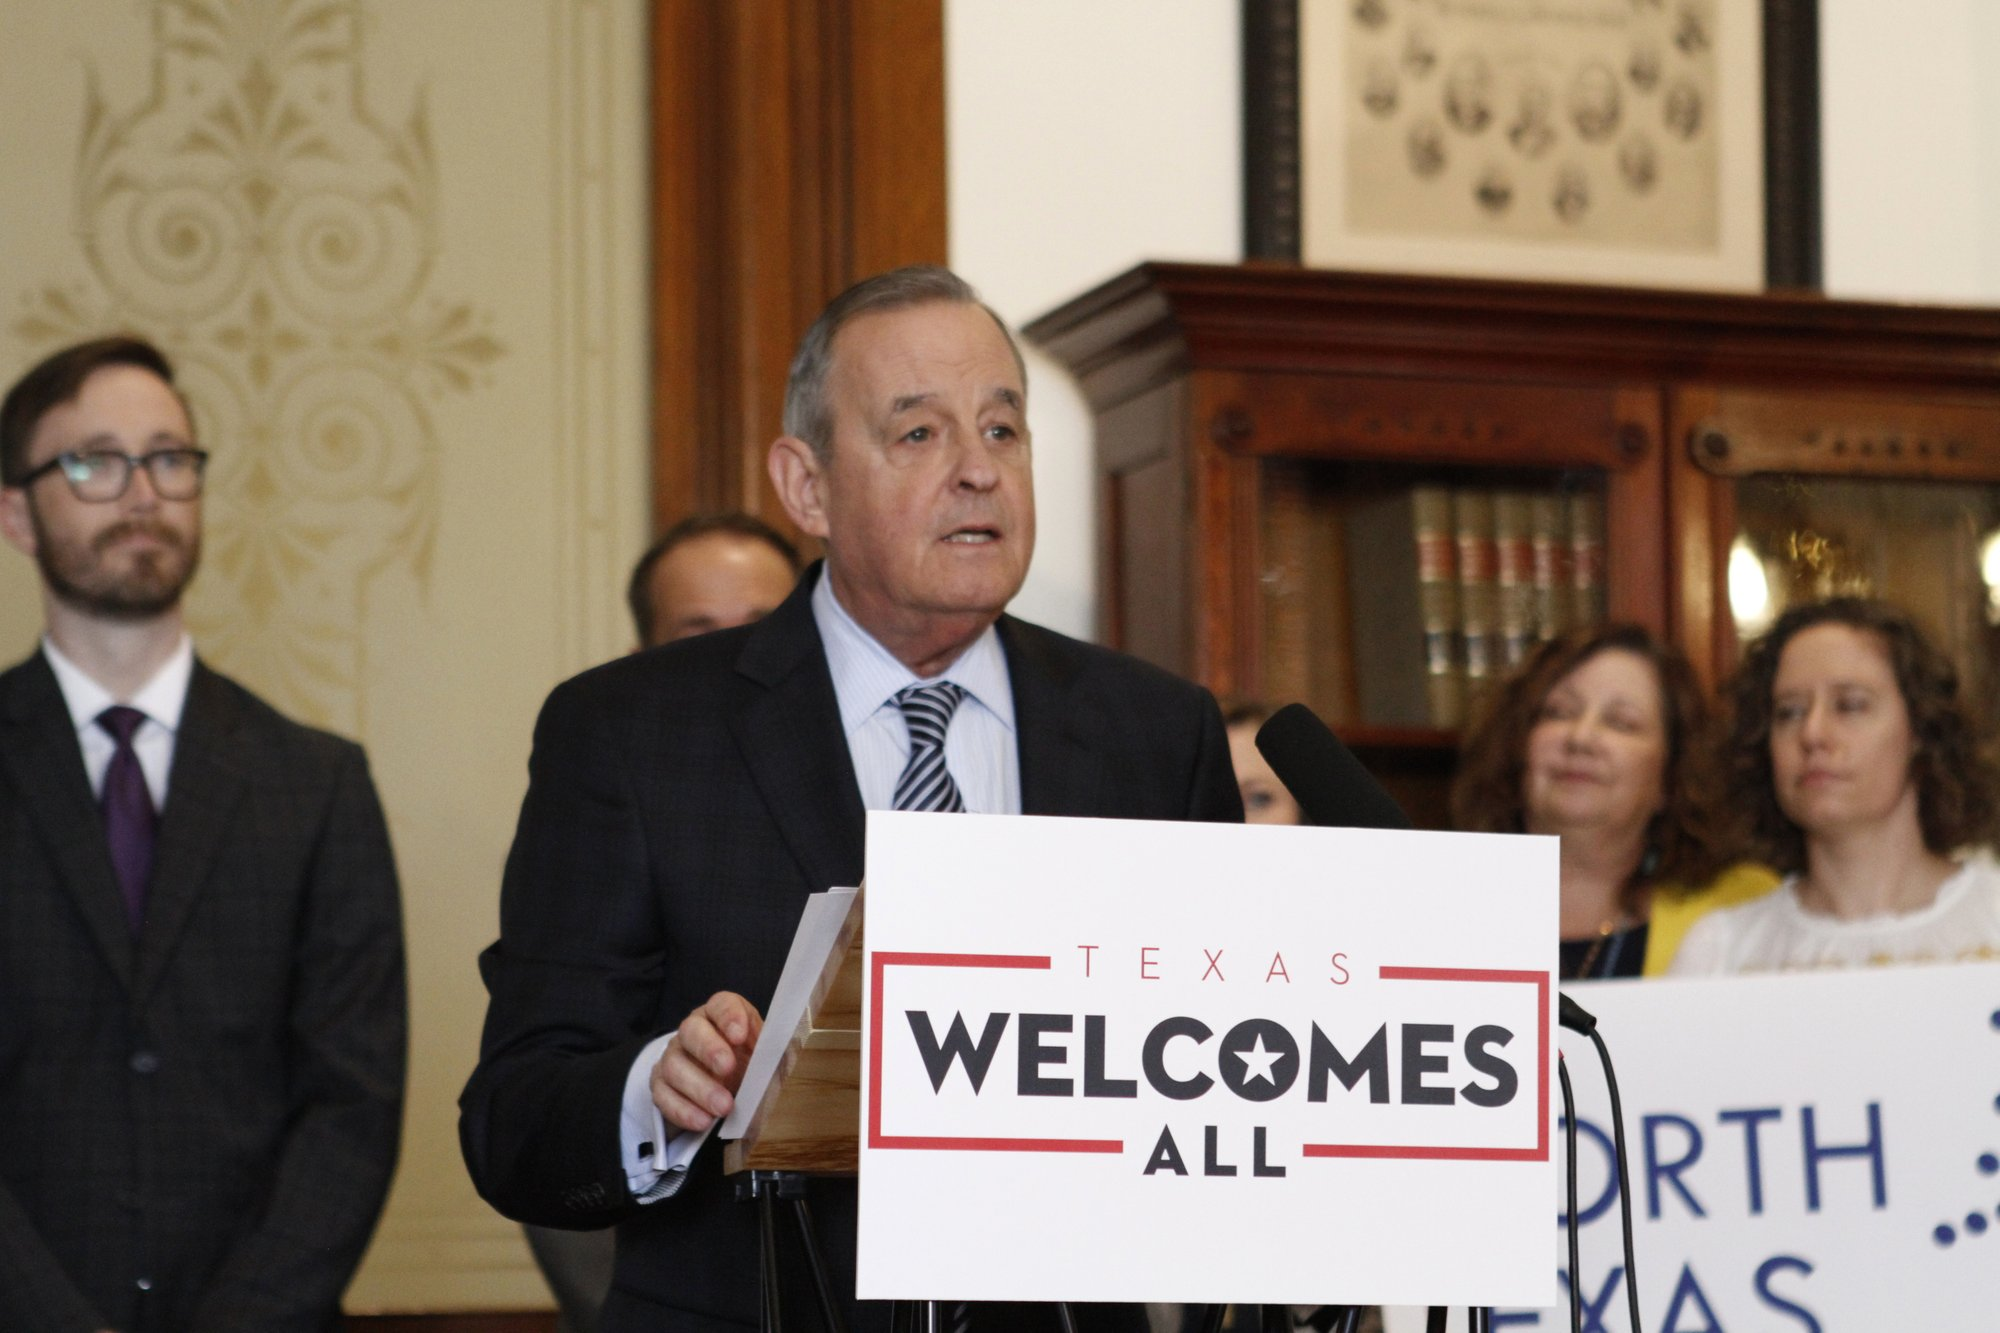 Top firms decry religious exemption bills proposed in Texas